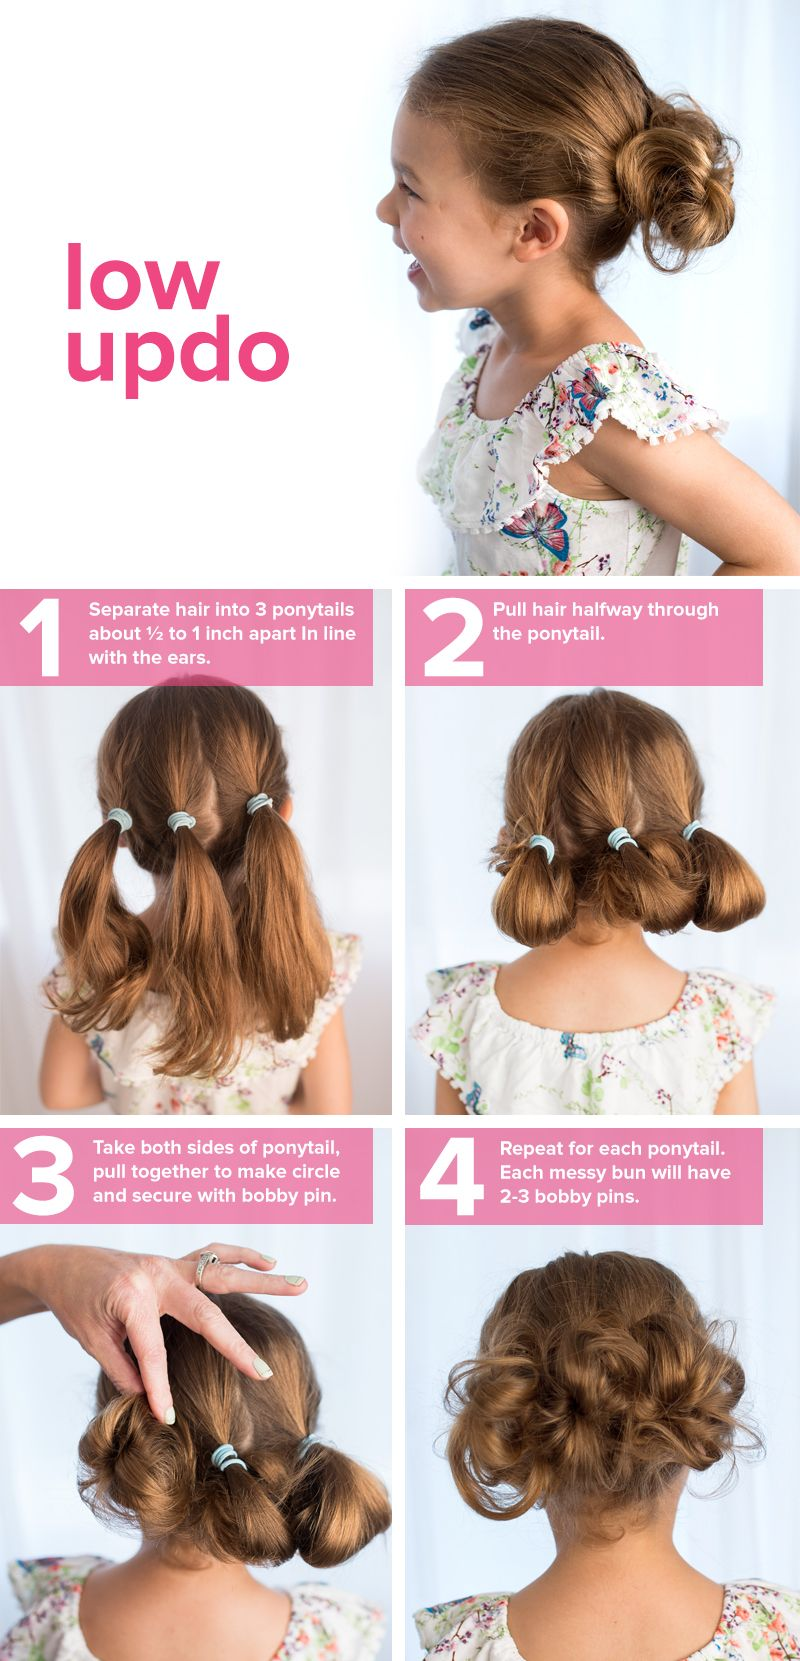 fast easy cute hairstyles for girls pinterest low updo updo